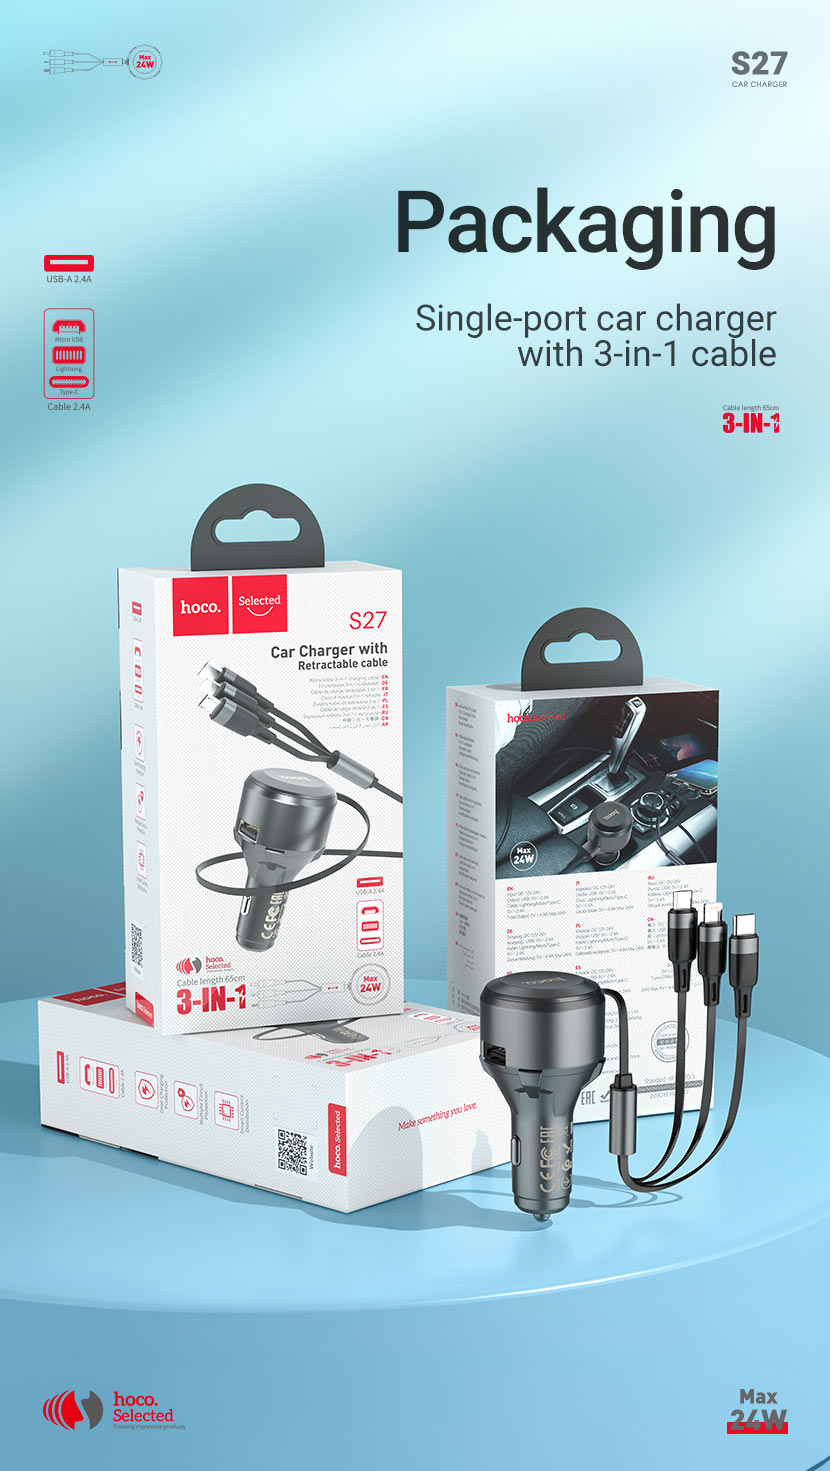 hoco selected news s27 tributo single port car charger with 3in1 cable package en